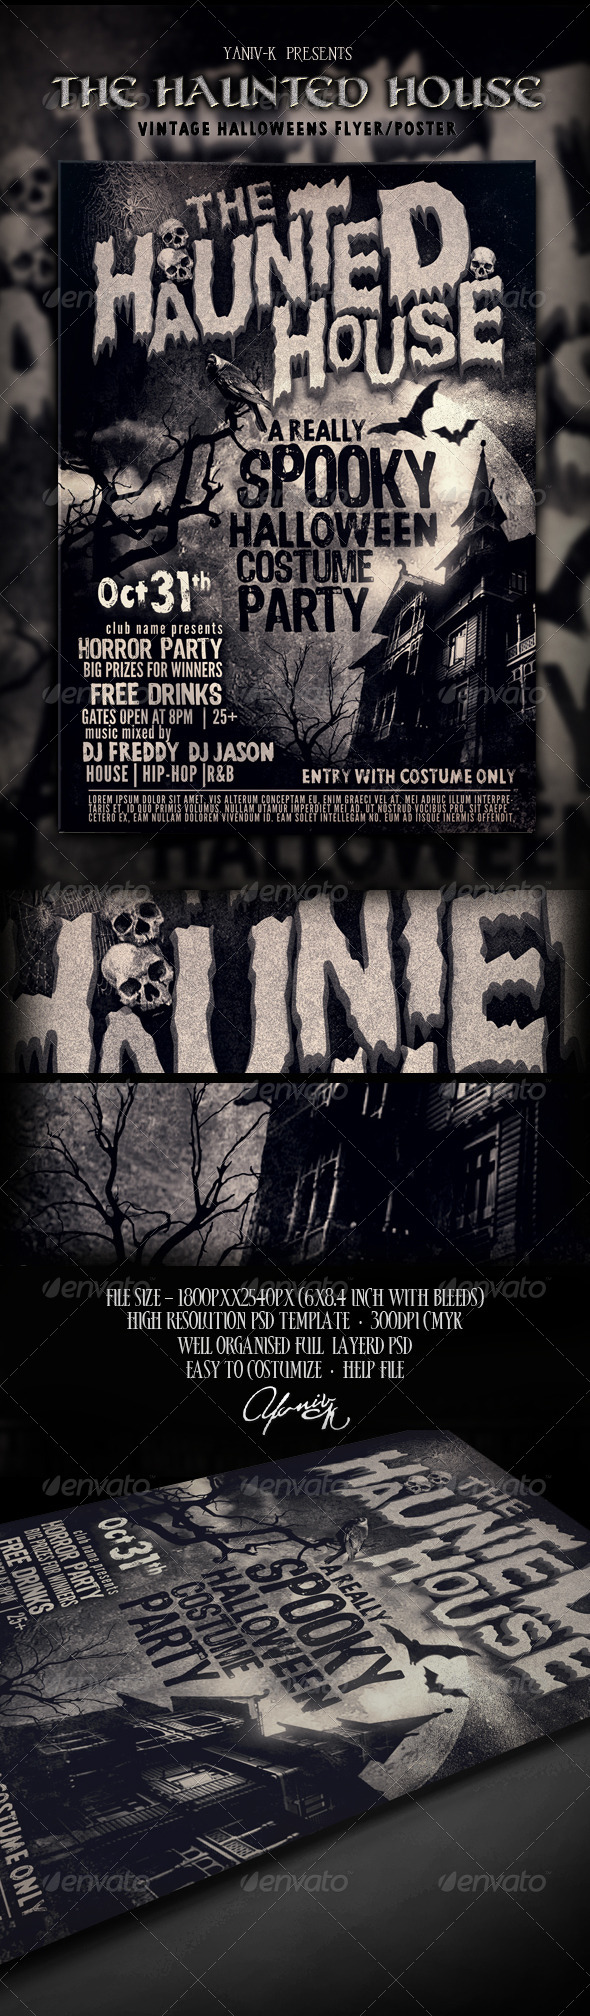 The Haunted House Flyer Template - Holidays Events